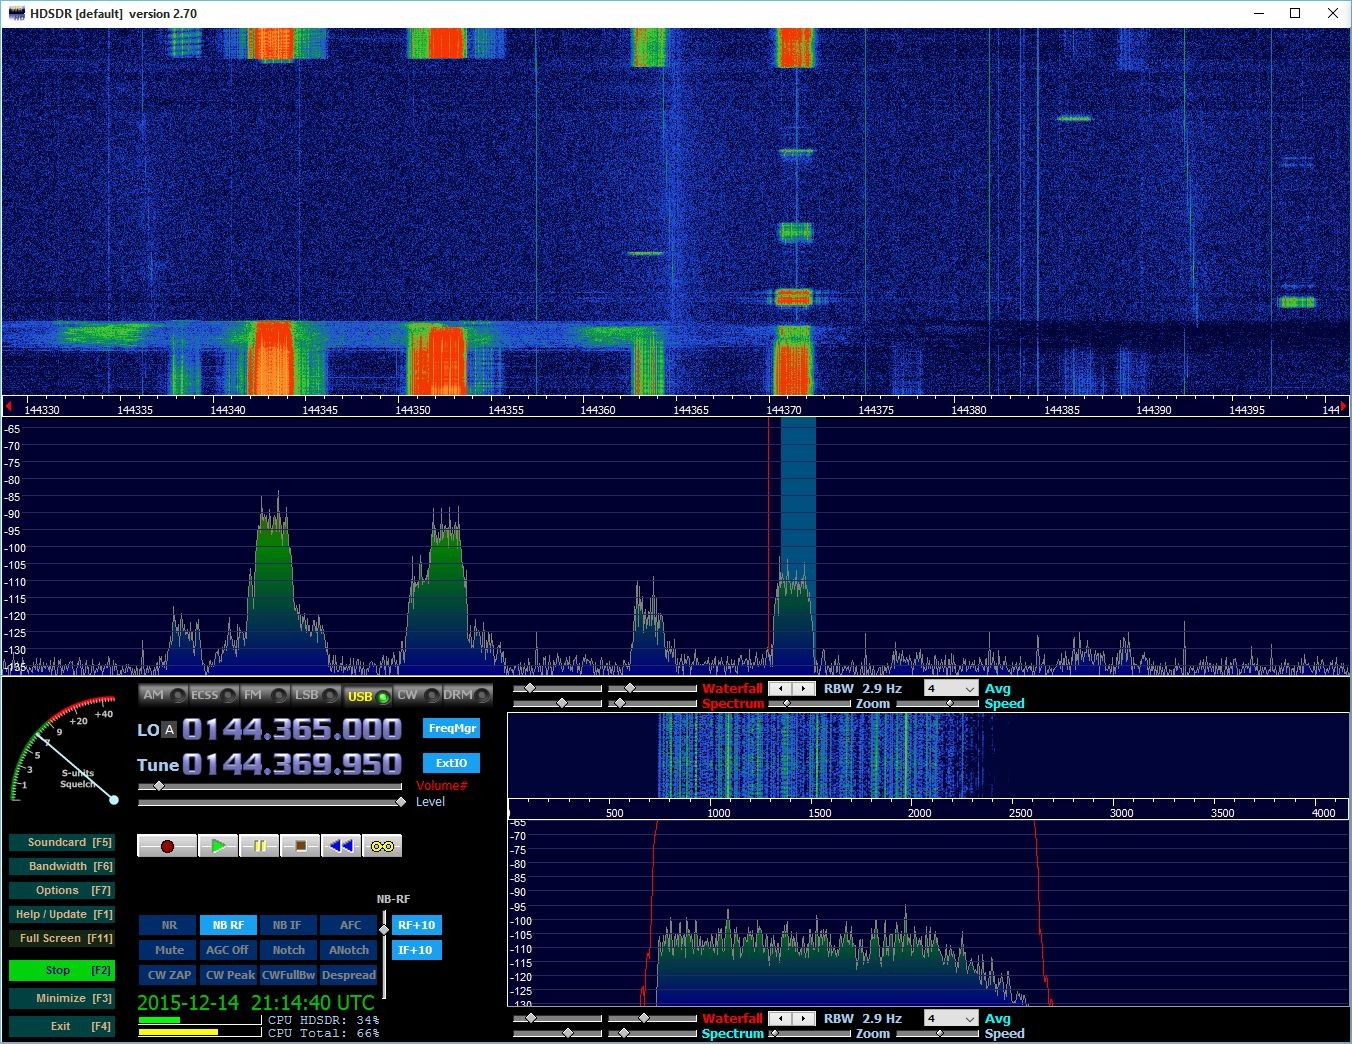 Lots of bursts from OH6NG and EU6AF on 144.370